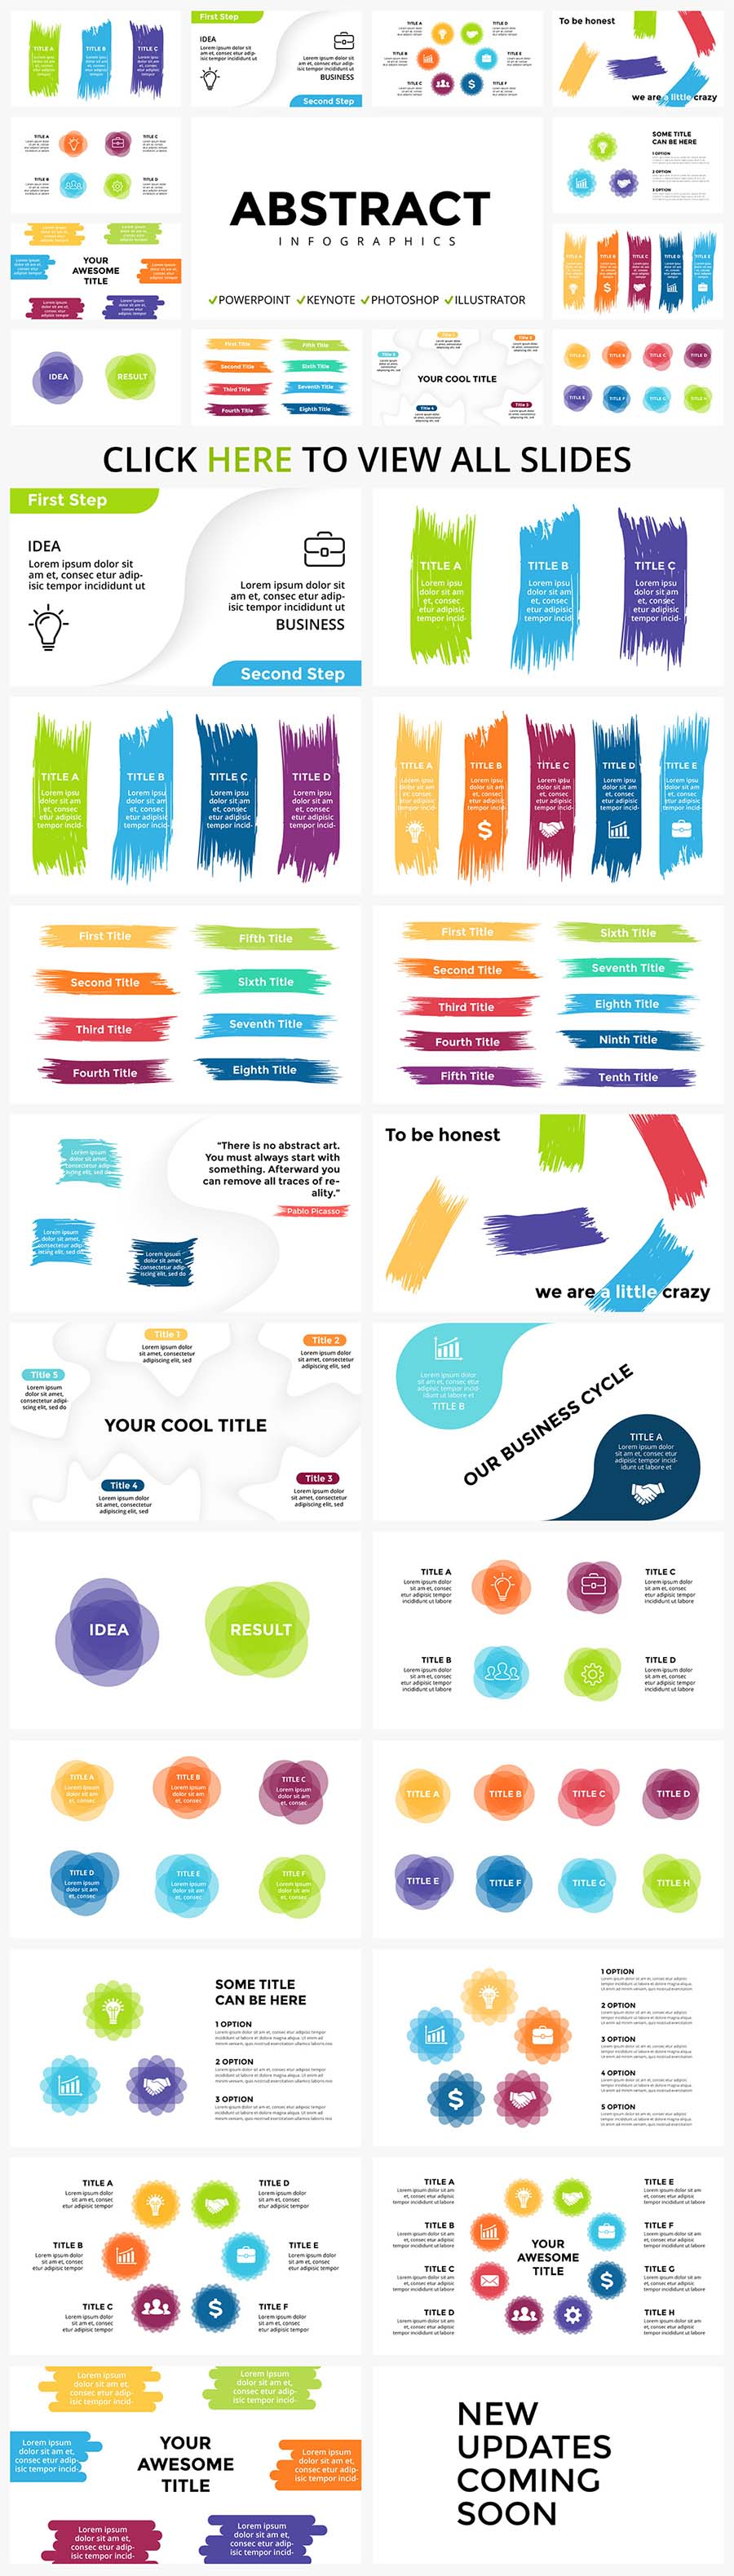 Cool Infographics in 2020. Best Infographics Bundle: 1500 items - $29 - 10 ABSTRACT